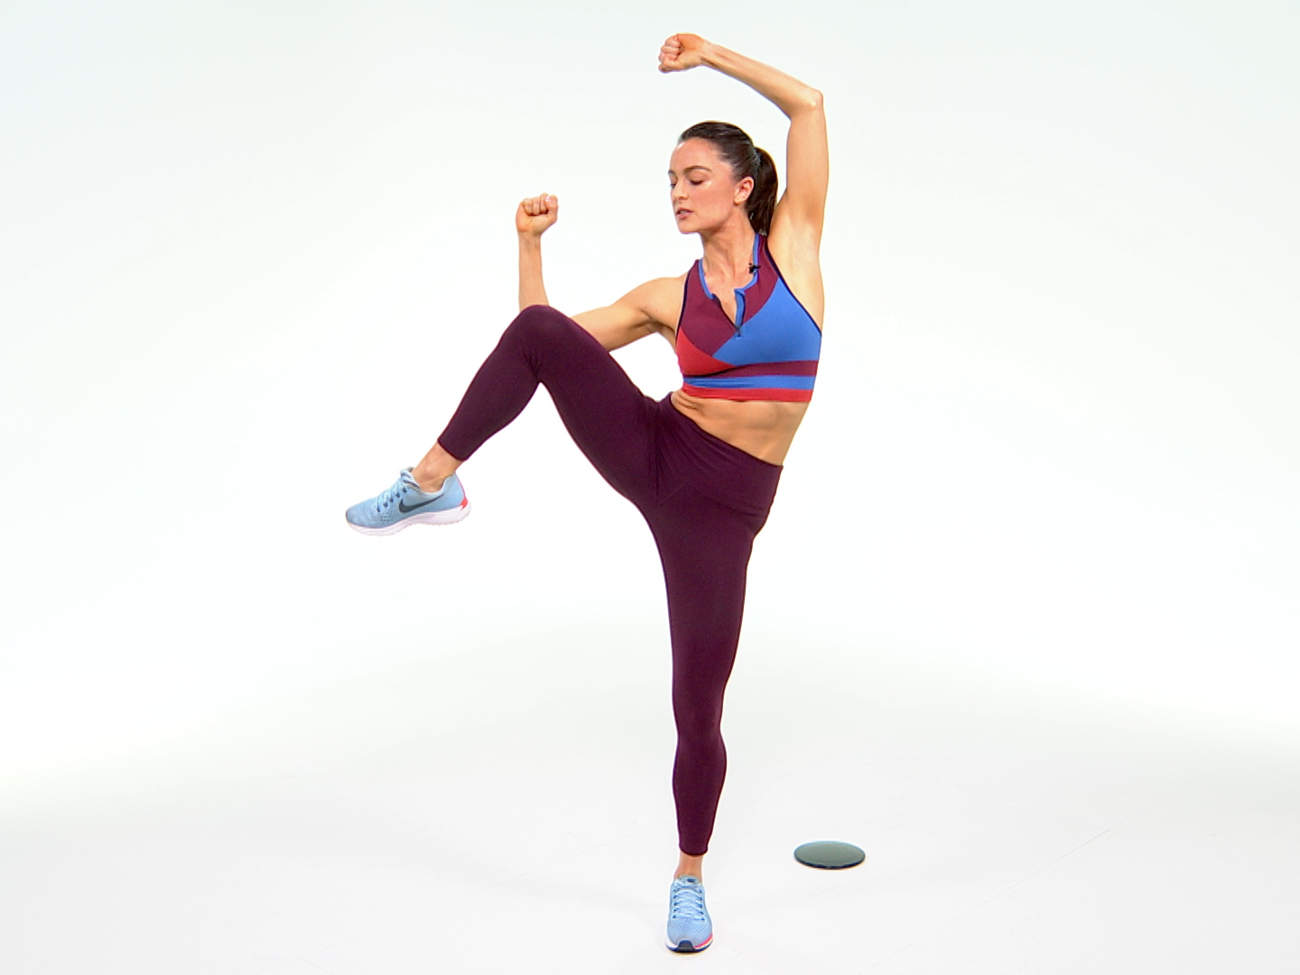 the-sculpt-societys-18-minute-total-body-sliders-workout-video